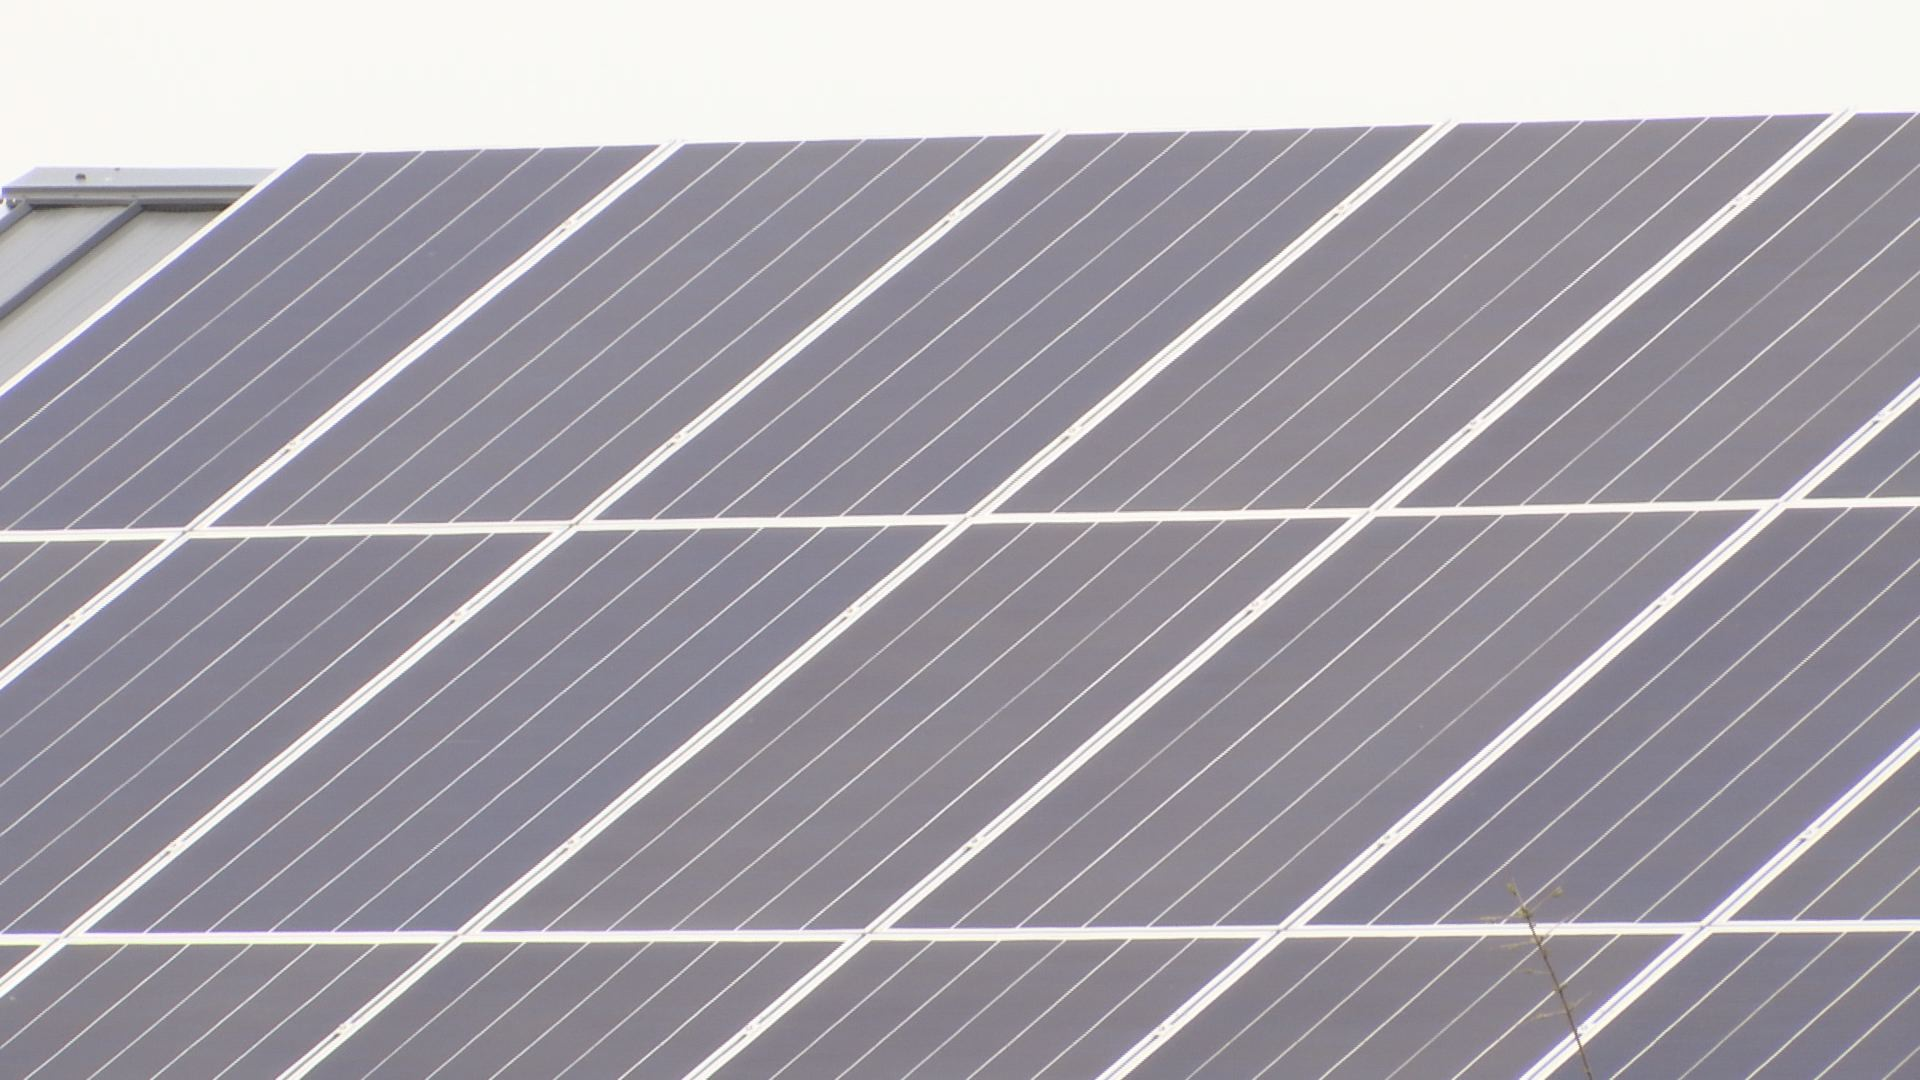 City Of Talent Paves The Way For More Solar Energy